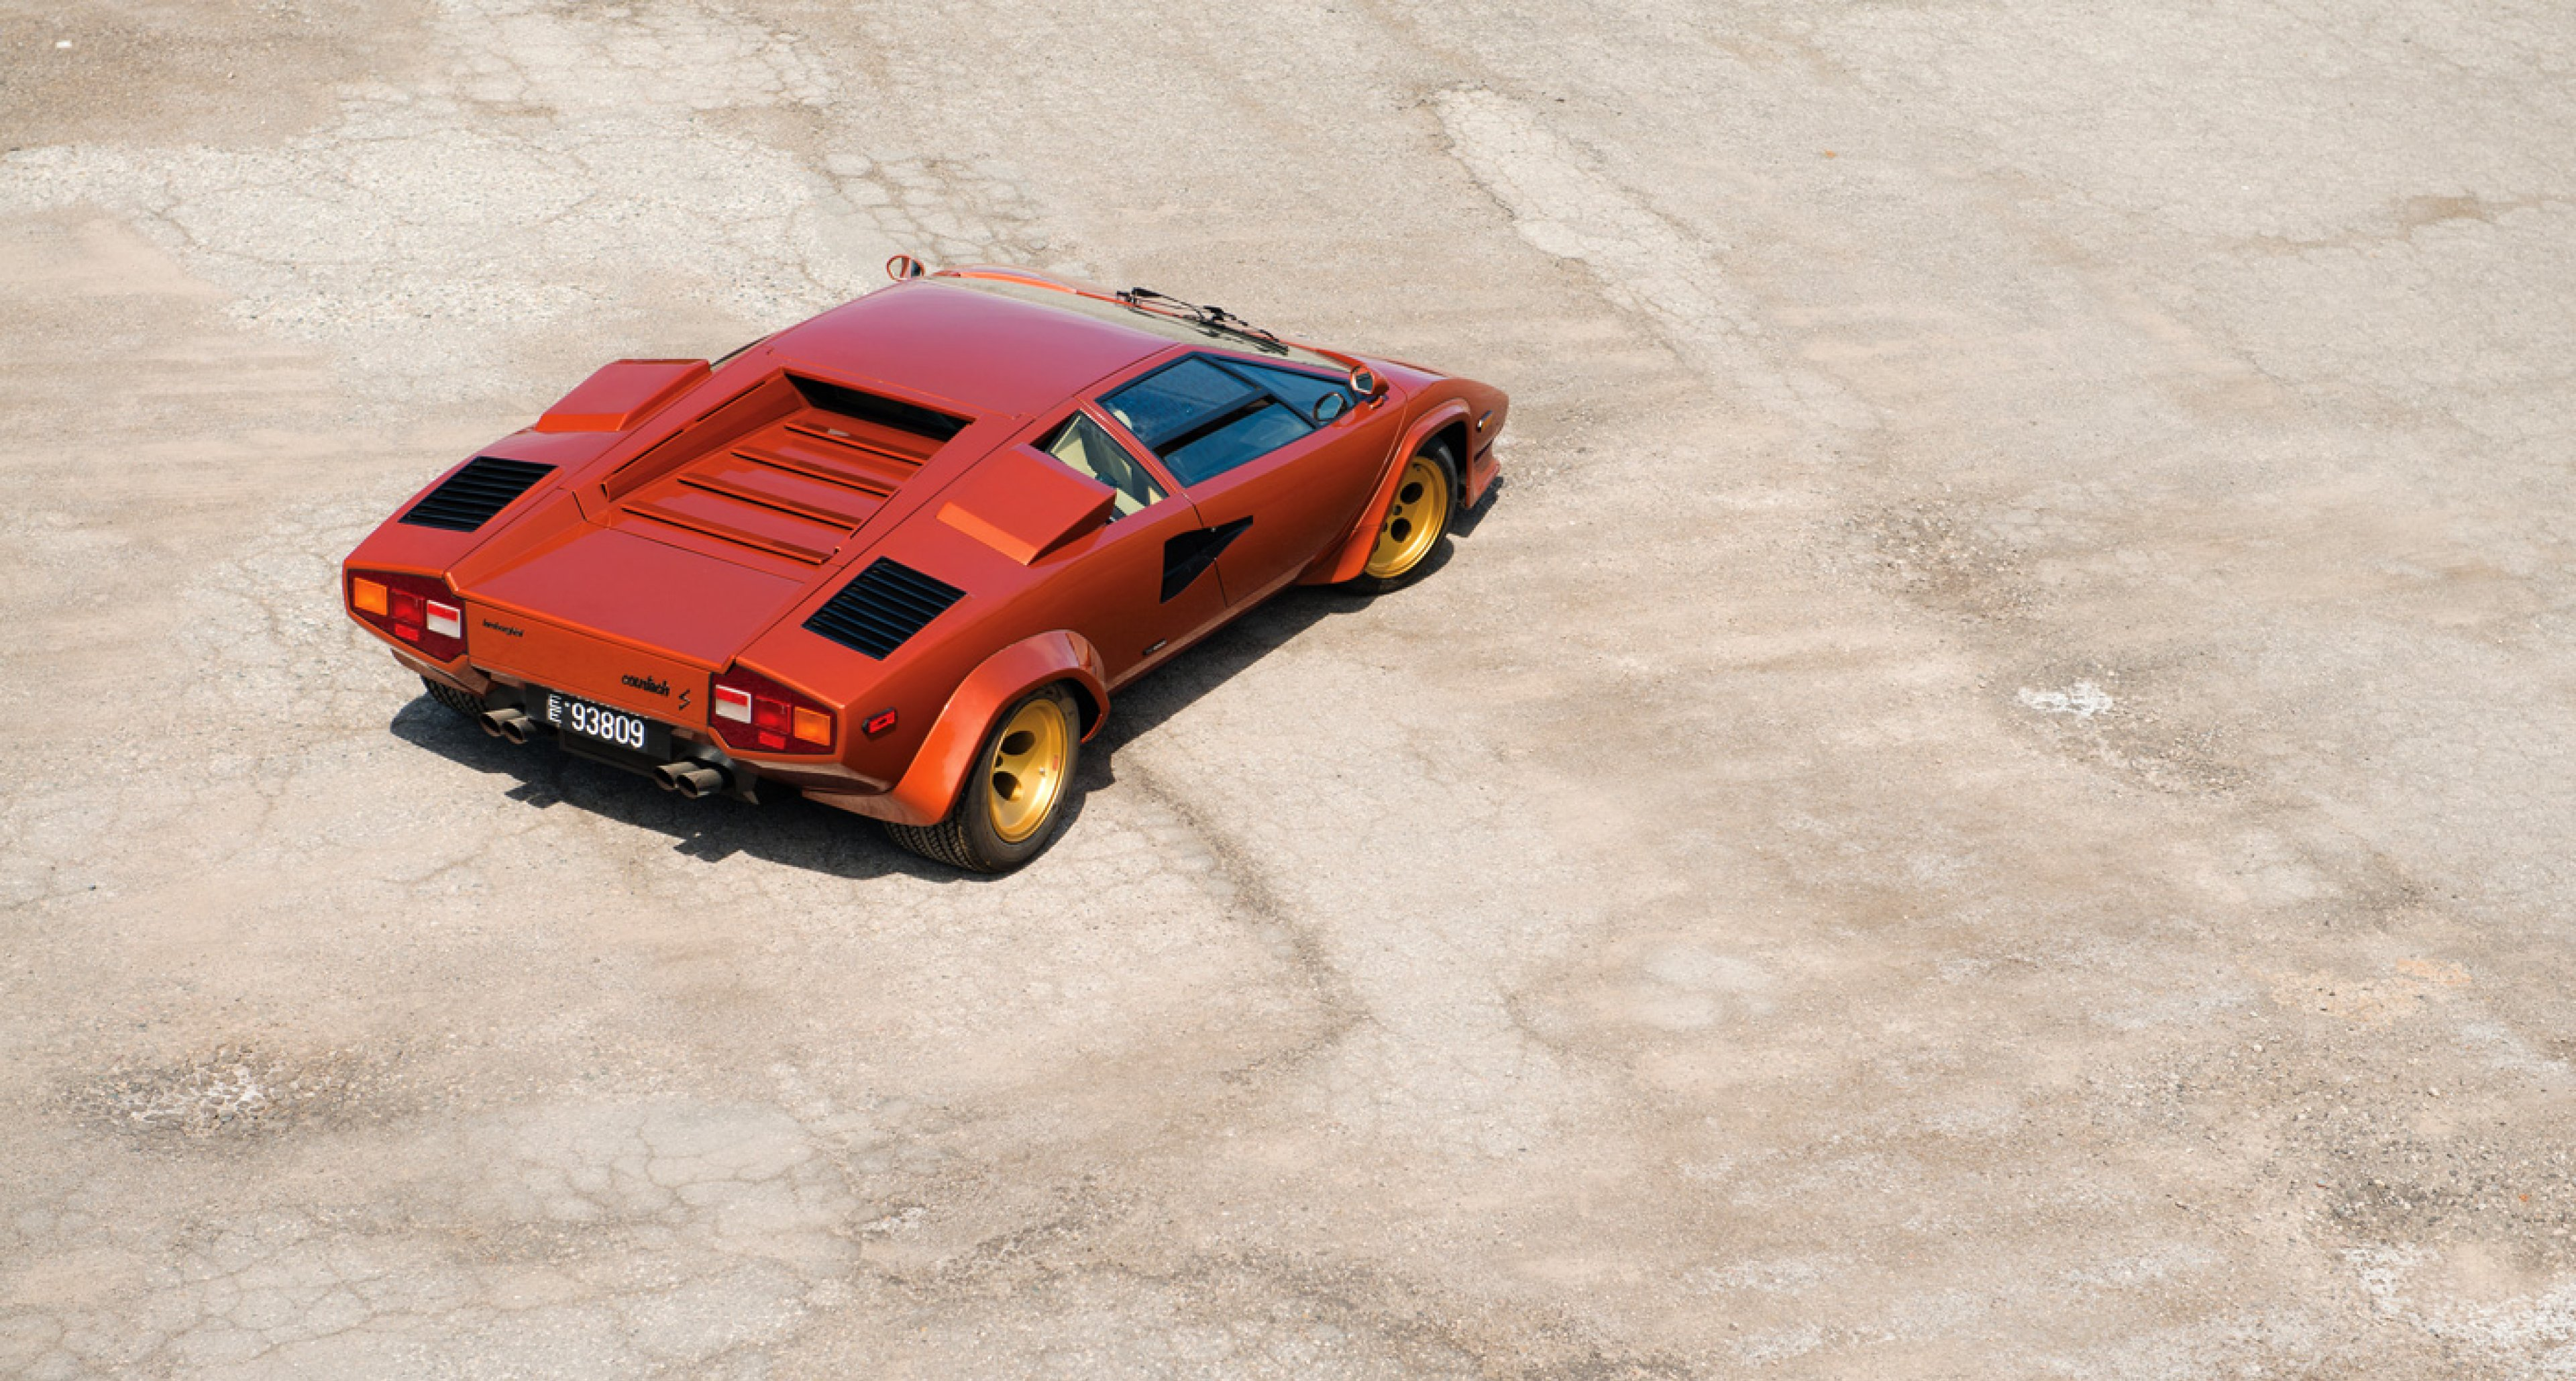 A 1979 Lamborghini Countach LP400S Series I to be sold at RM's Monterey auction in August